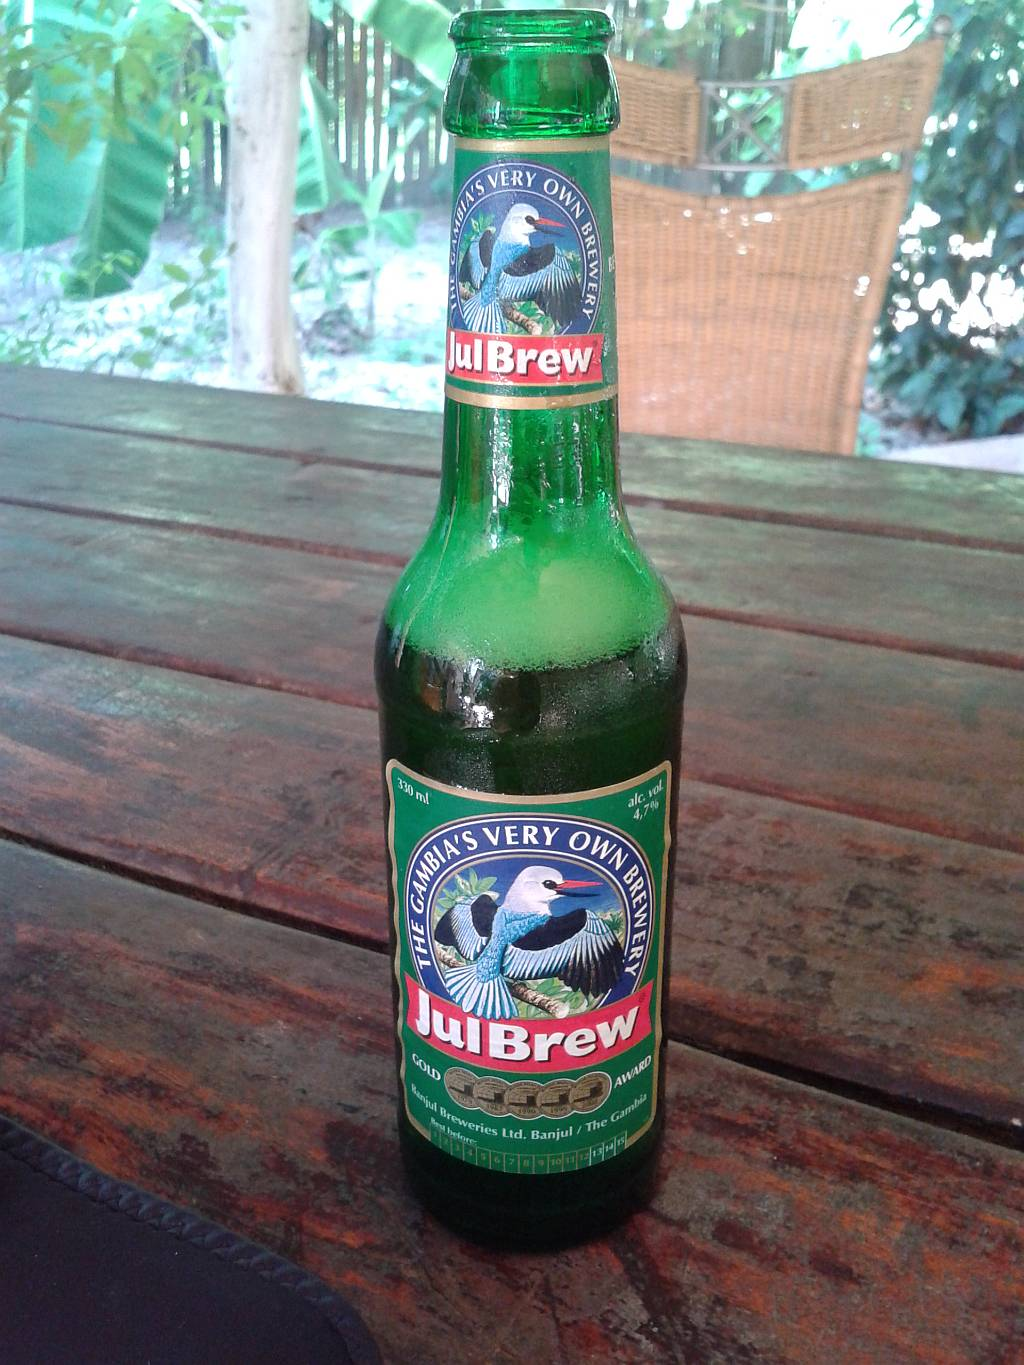 Julbrew, The Gambia